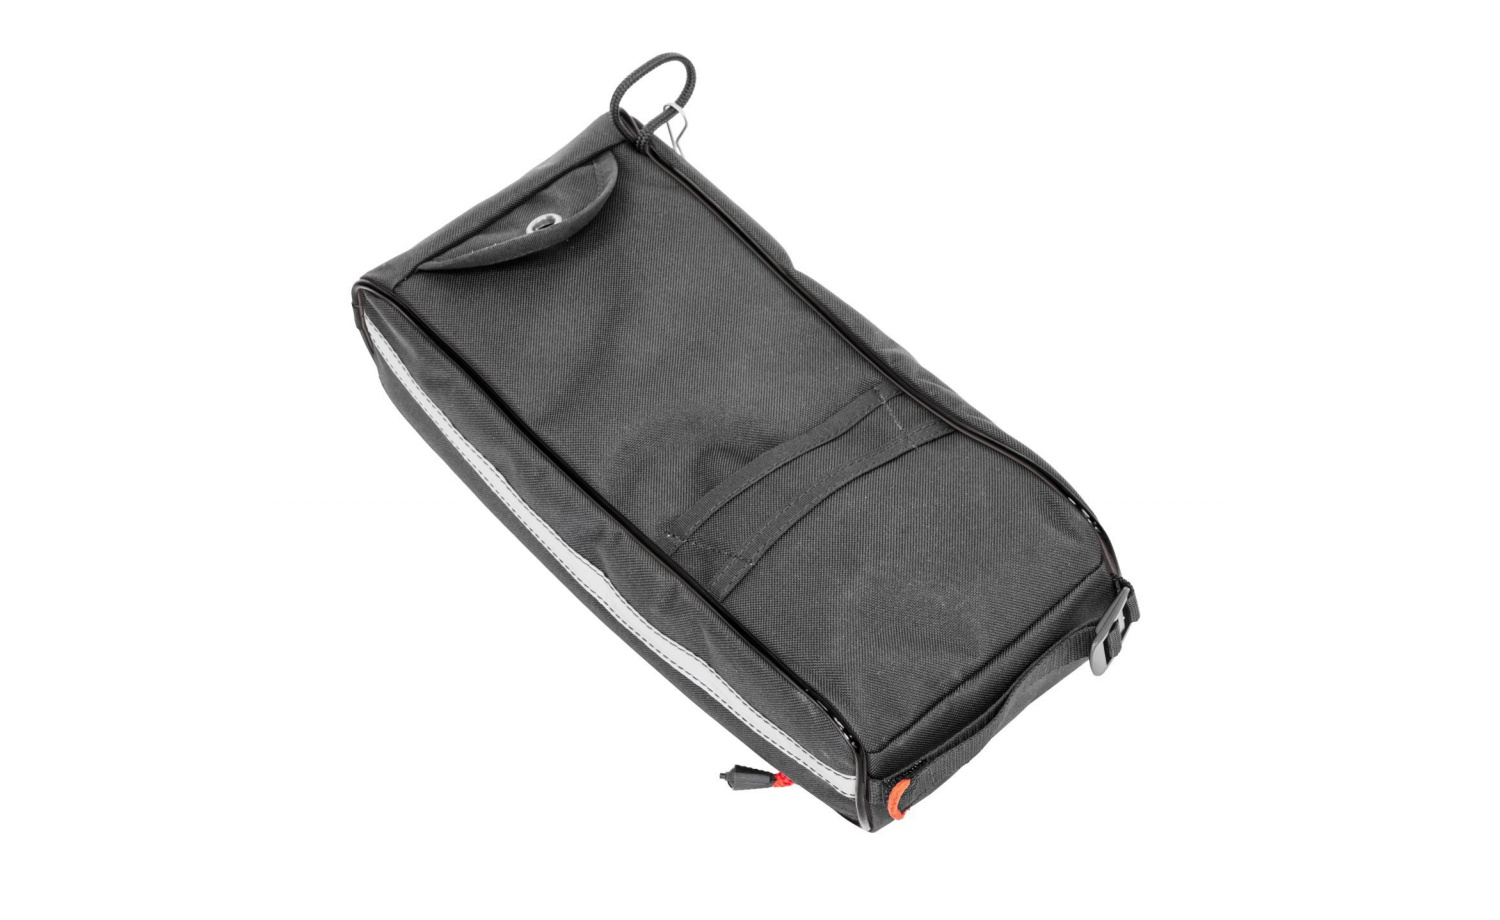 Carrying bag KOSTKA FFB Footbike fender box